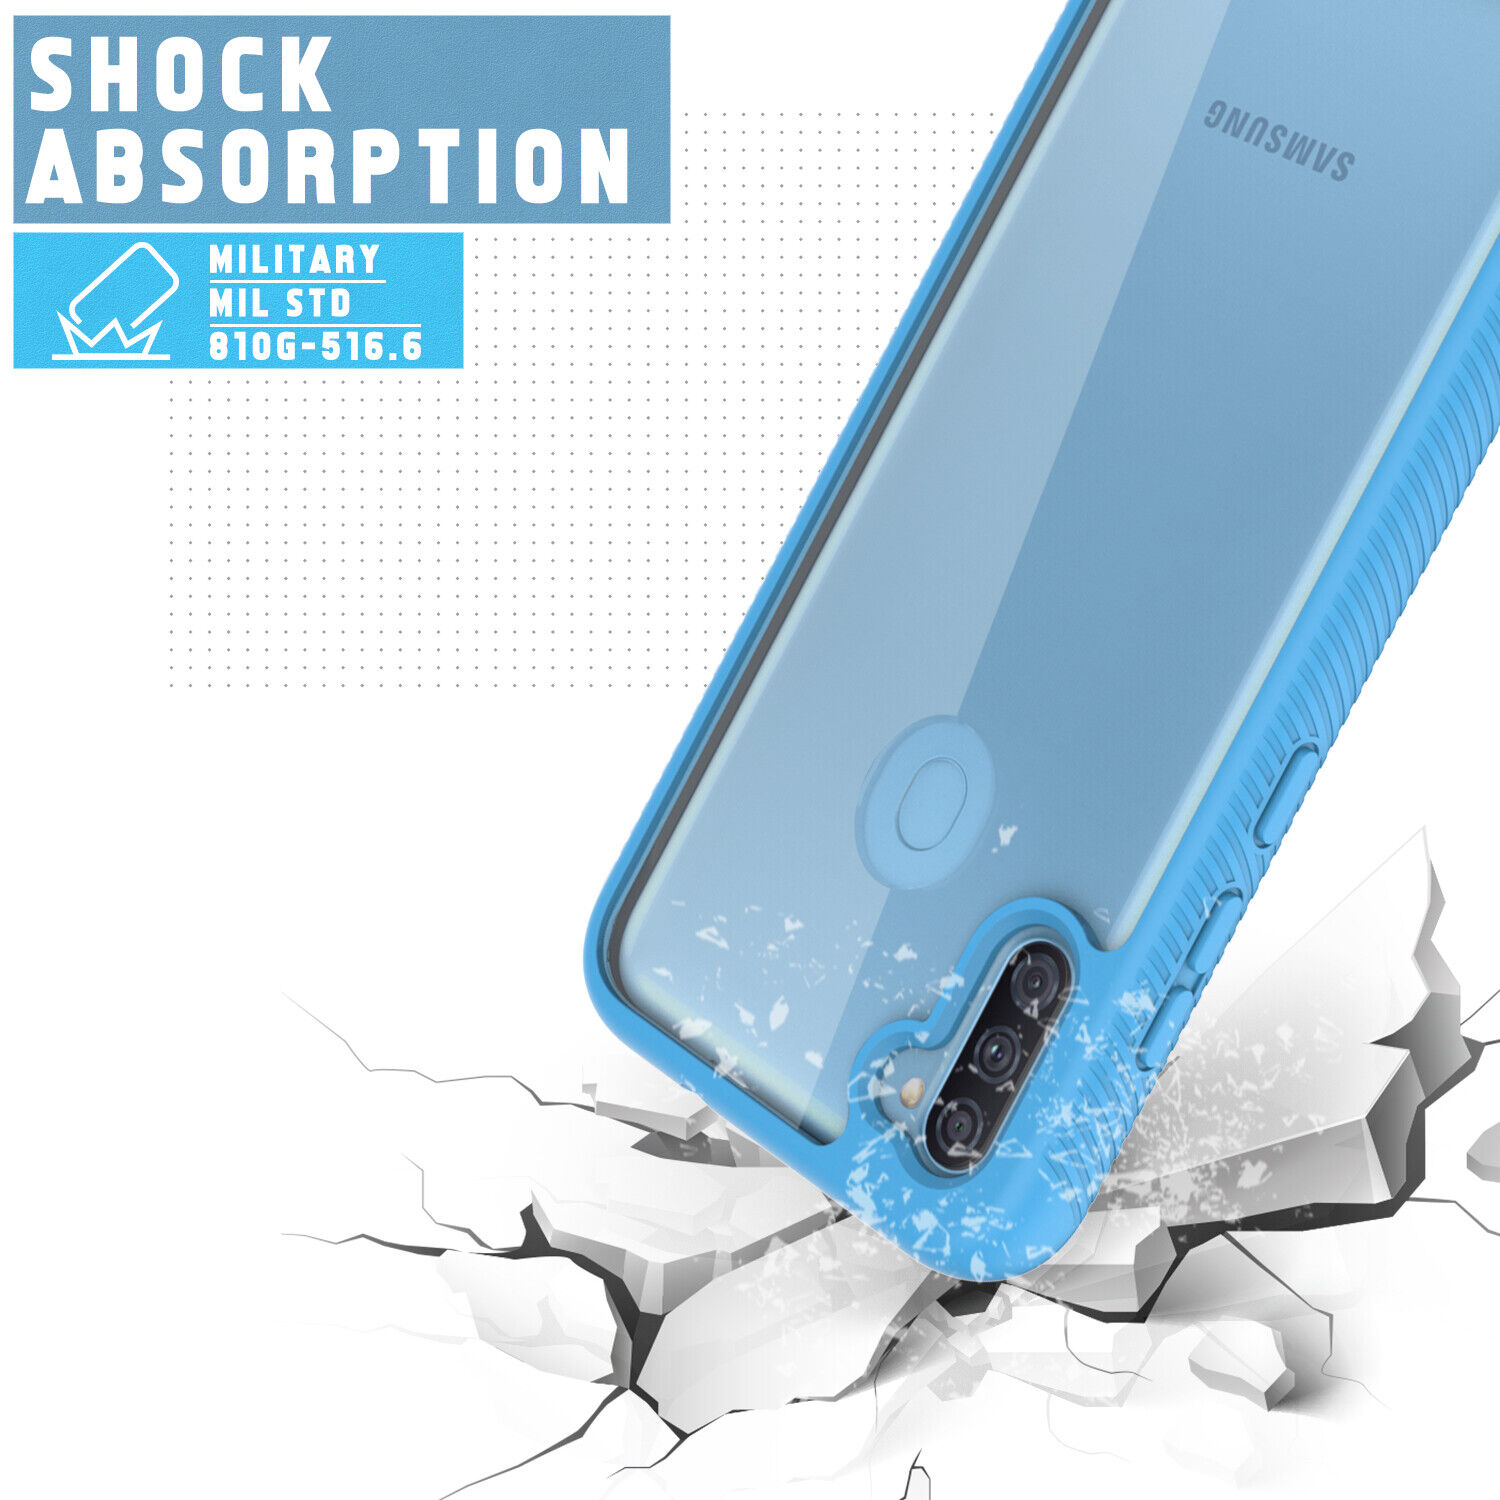 For Samsung Galaxy A11 A12 A21 Hybrid Case Cover With Built-in Screen Protector Cases, Covers & Skins